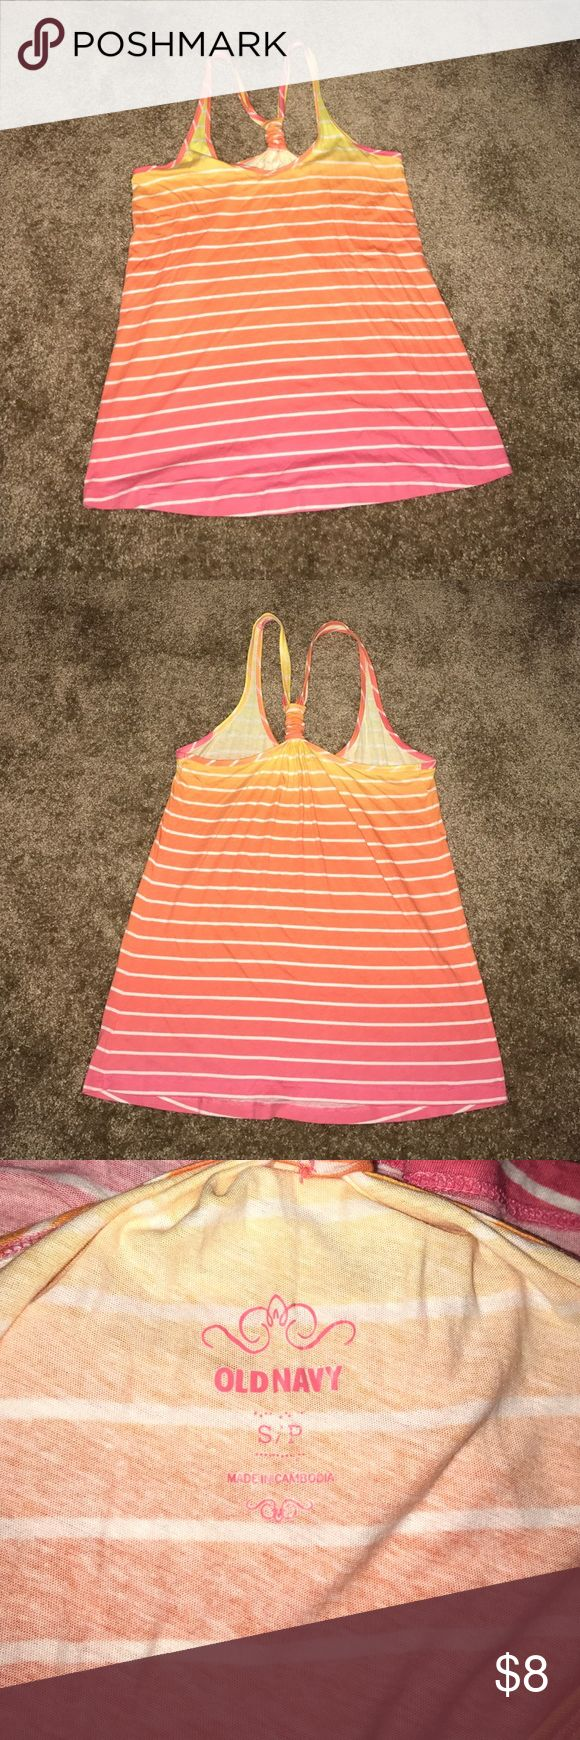 Old navy tank top Brightly colored tank from Old Navy. Very comfortable. Worn a handful of times. Great for summer time. Old Navy Tops Tank Tops